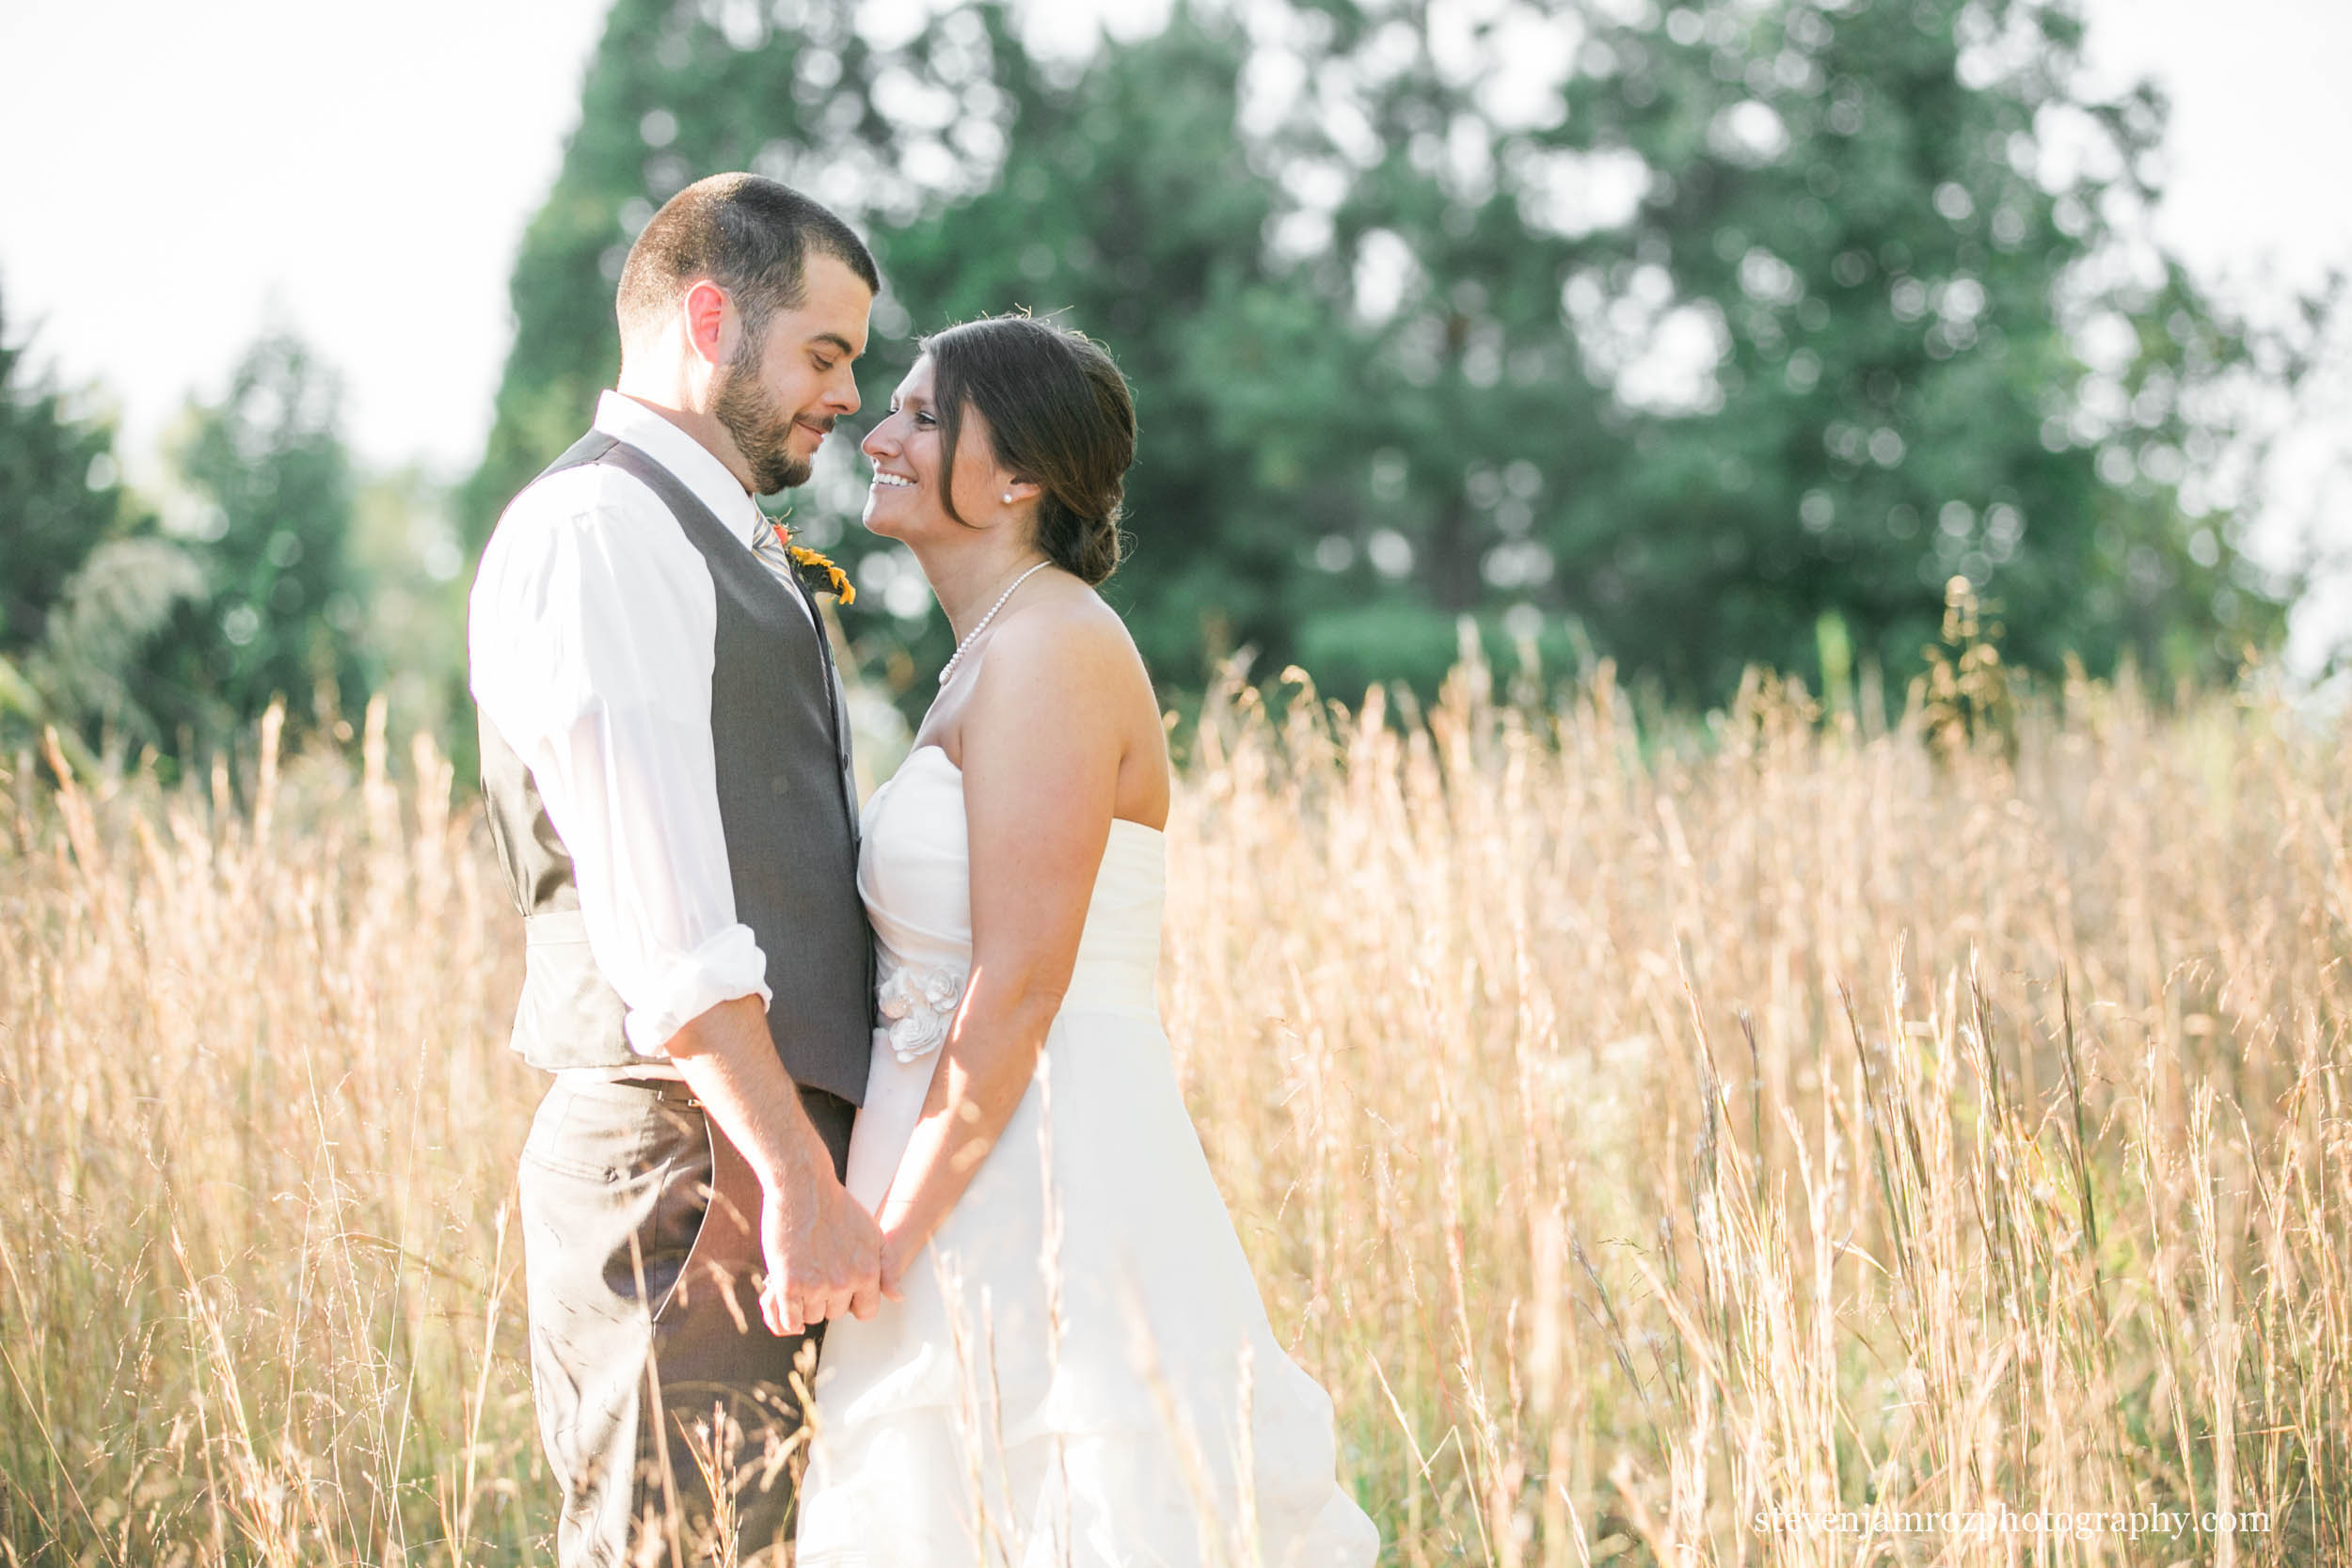 grass-field-bride-groom-snipes-farm-chapel-hill-steven-jamroz-photography-0108.jpg